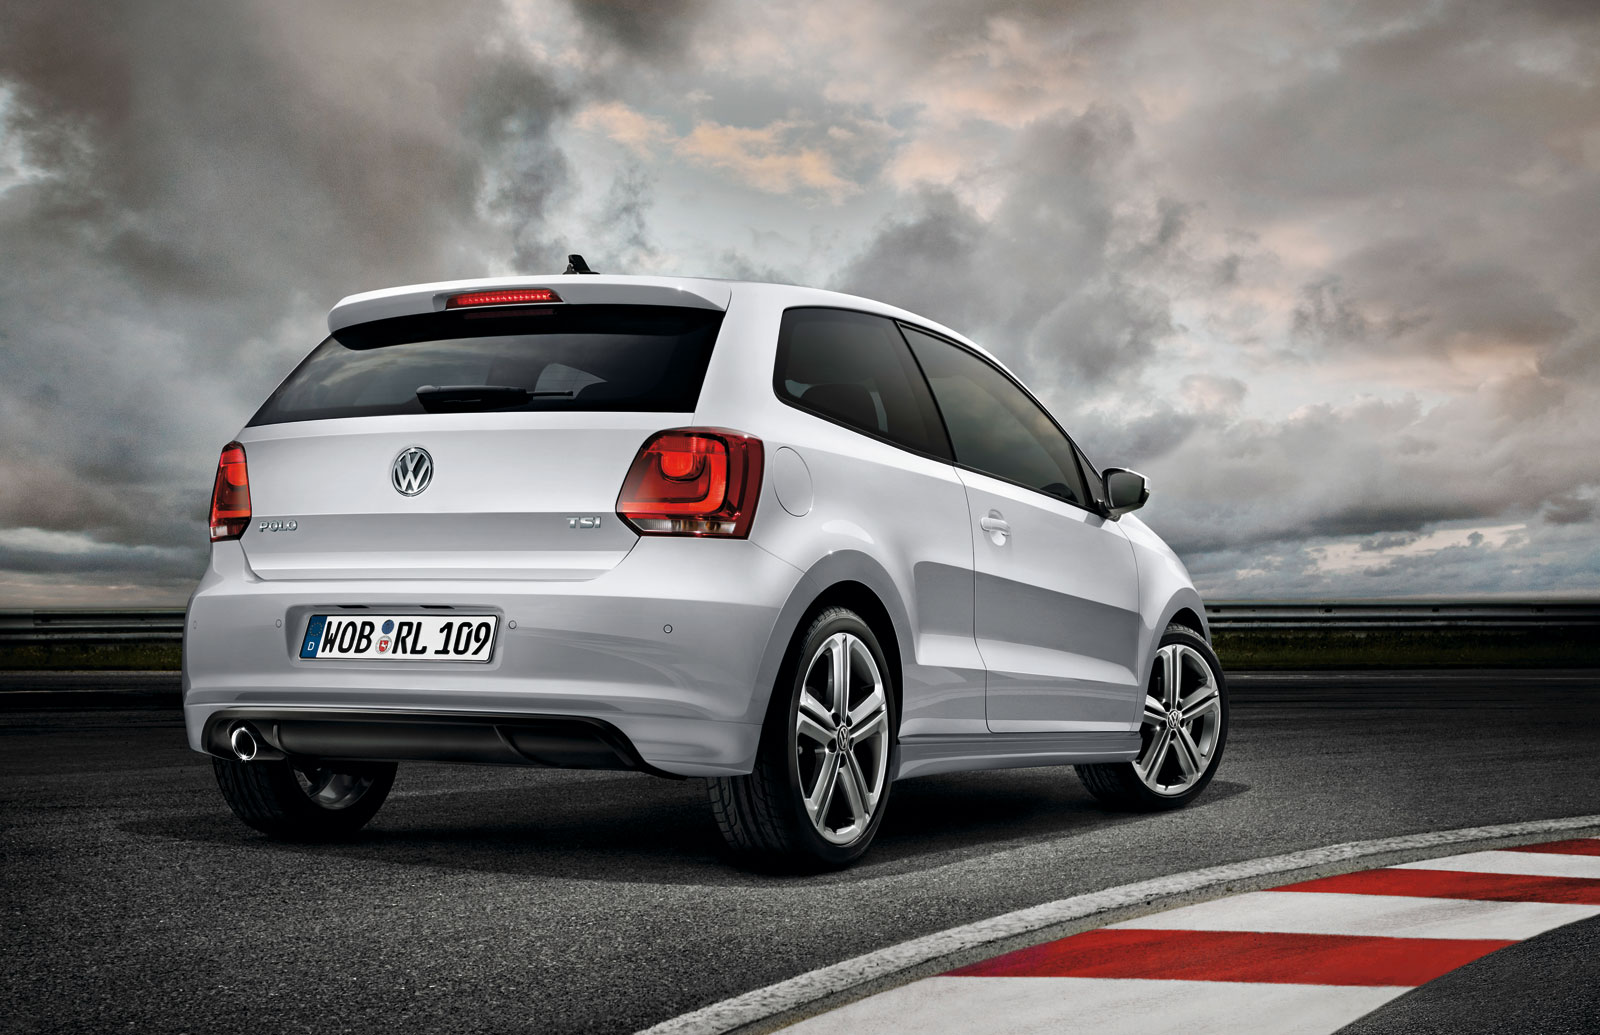 Vw Polo R Line 1600x1035 Download Hd Wallpaper Wallpapertip